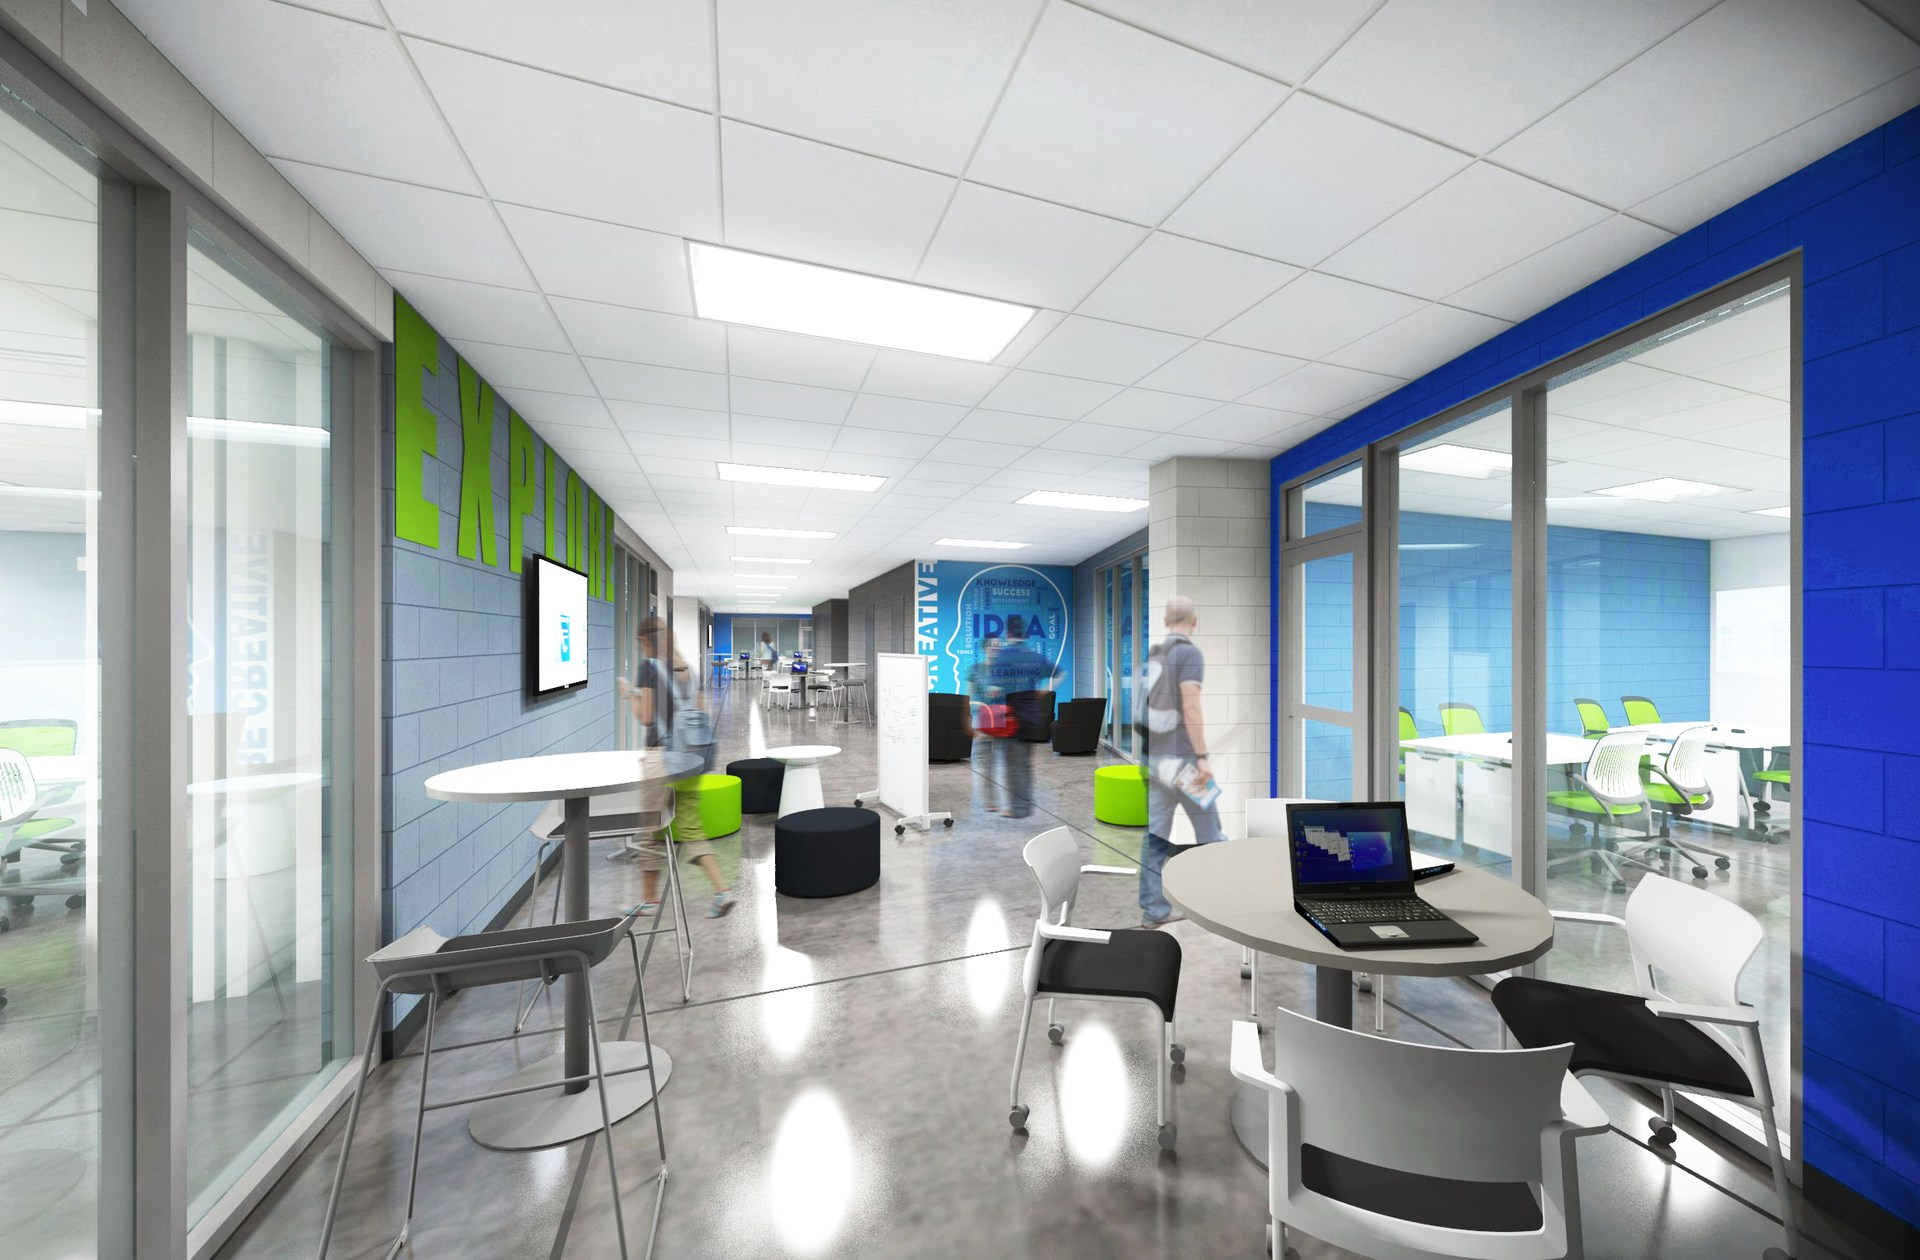 Rendering of a collaboration room at renovated MNTHS.